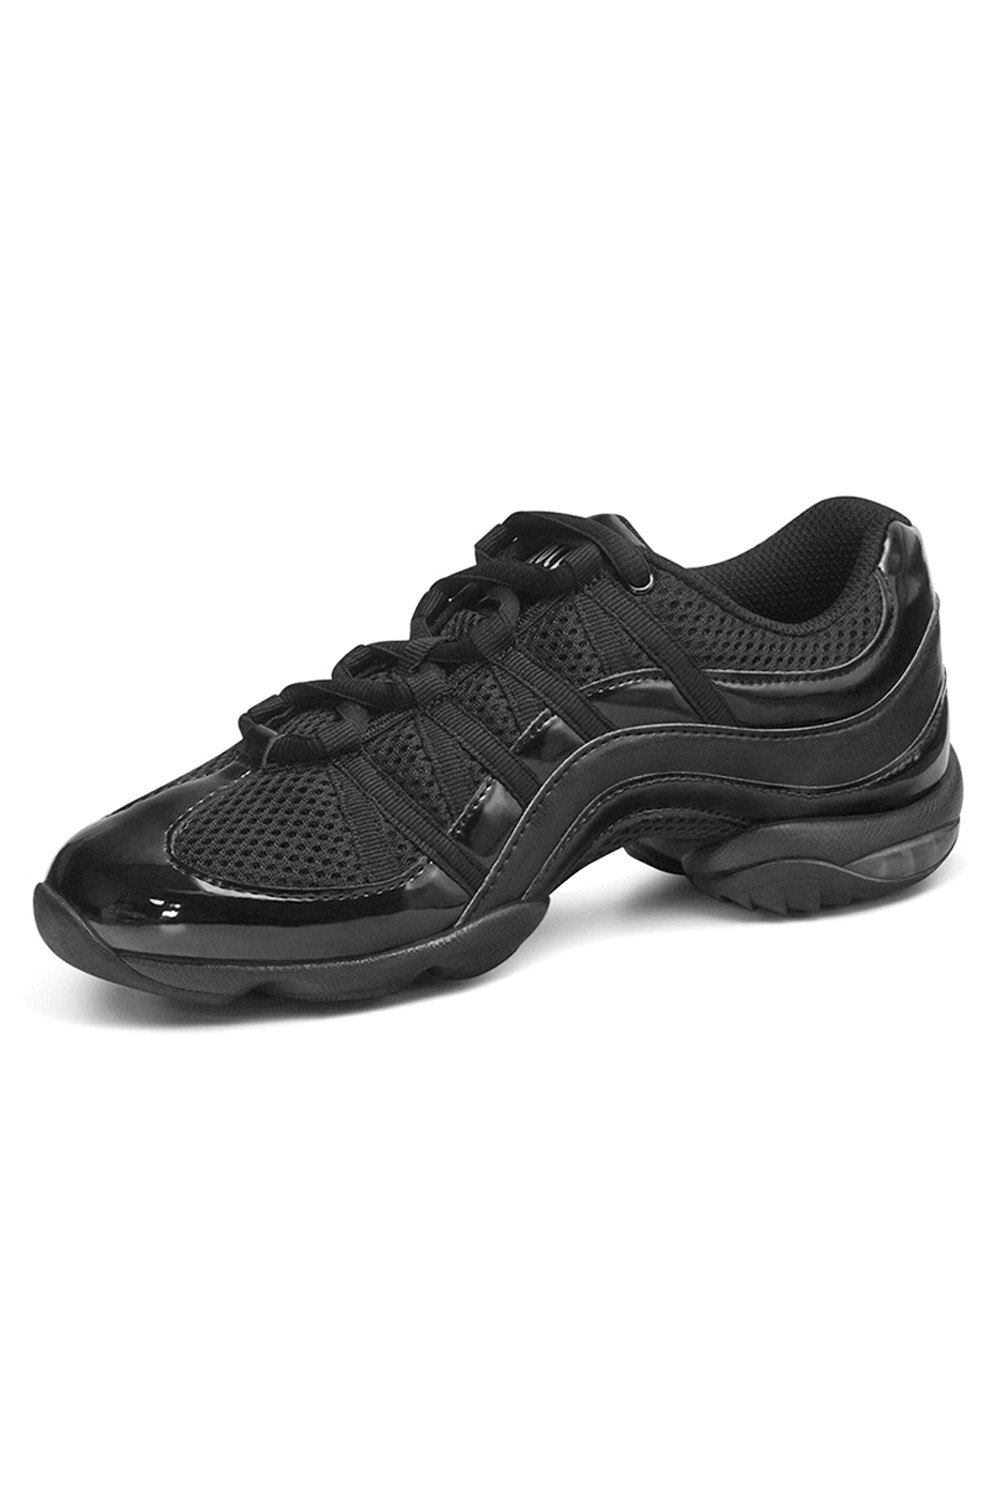 Wave - Uomo Men's Dance Sneakers